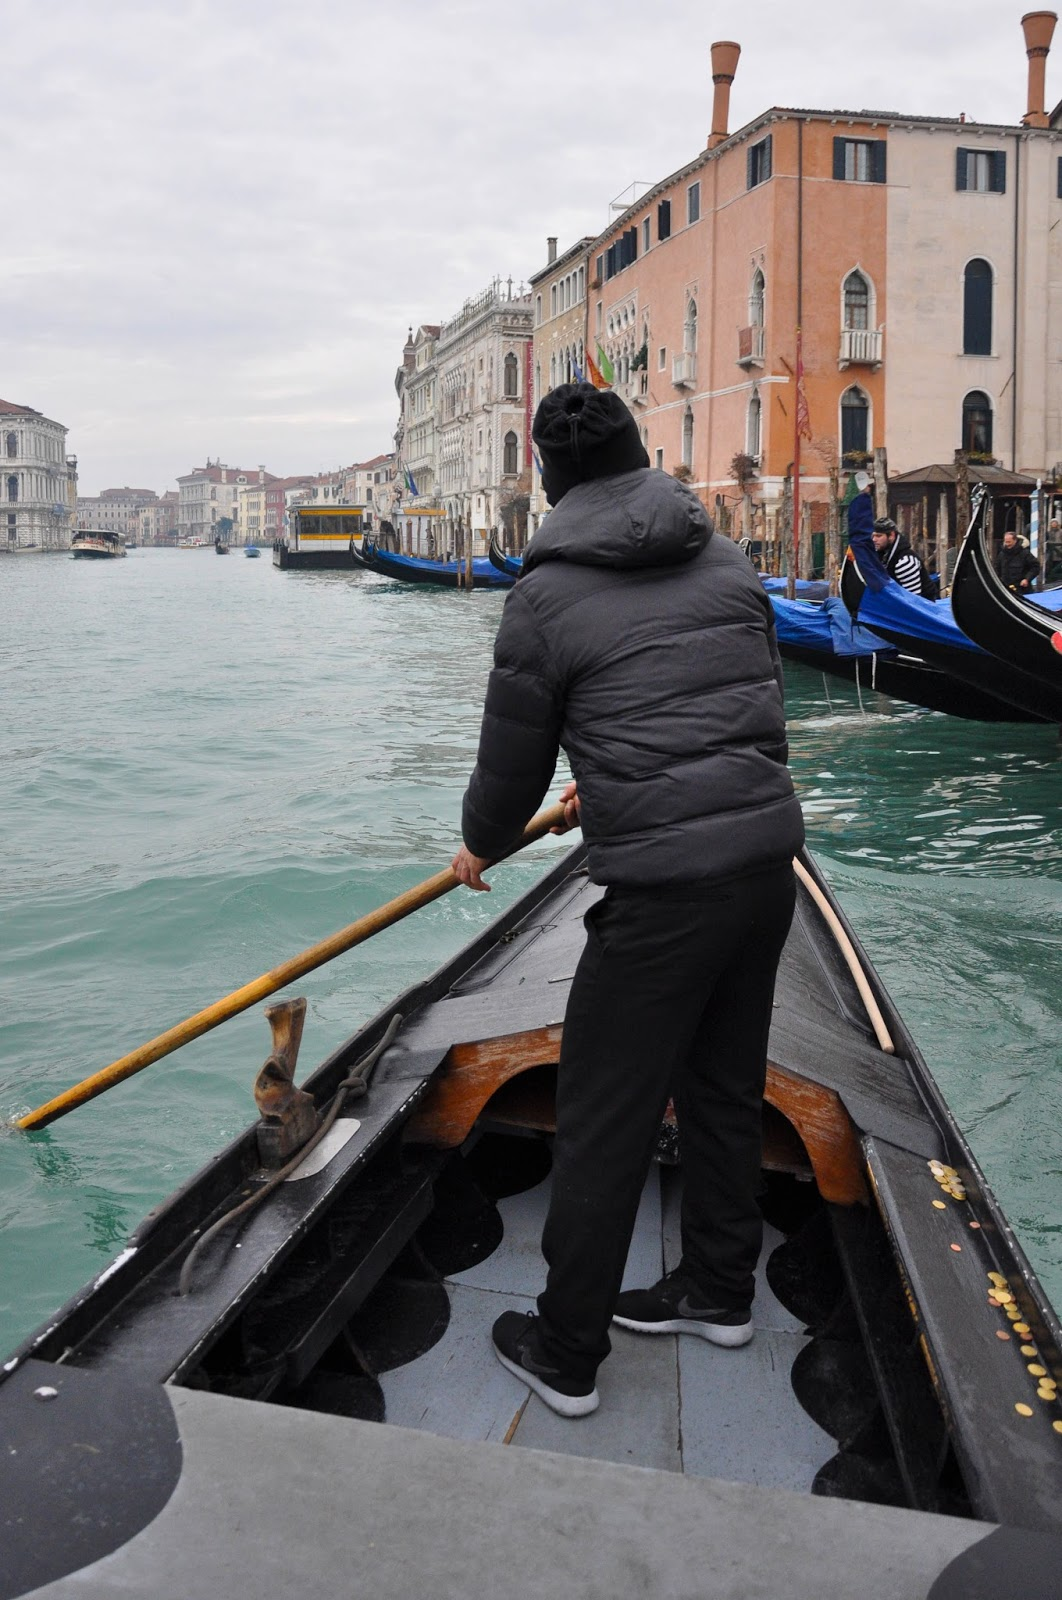 Rowing a traghetto on the Grand Canal, Venice, Italy